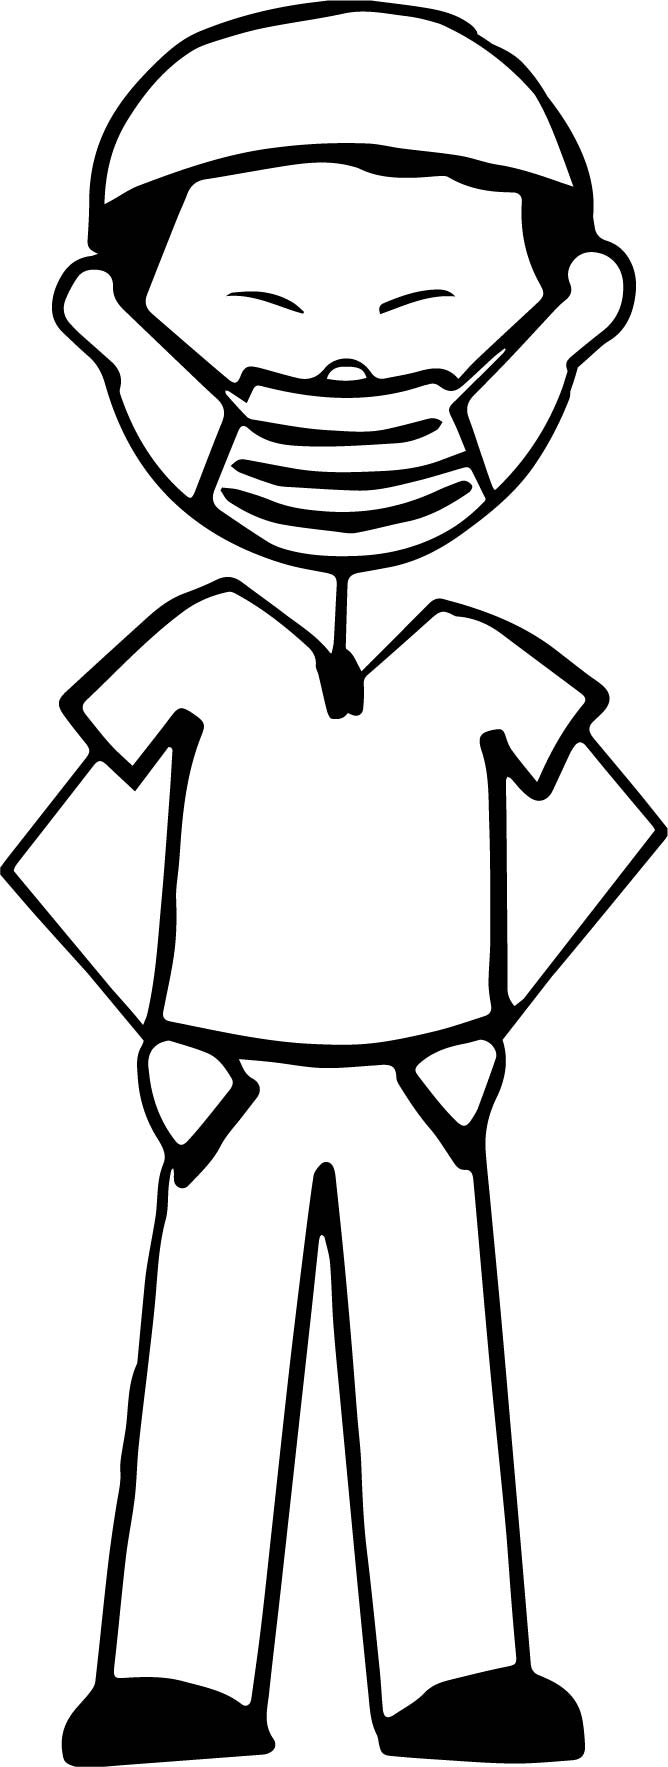 cartoon surgeon wearing a surgical mask coloring page wecoloringpage